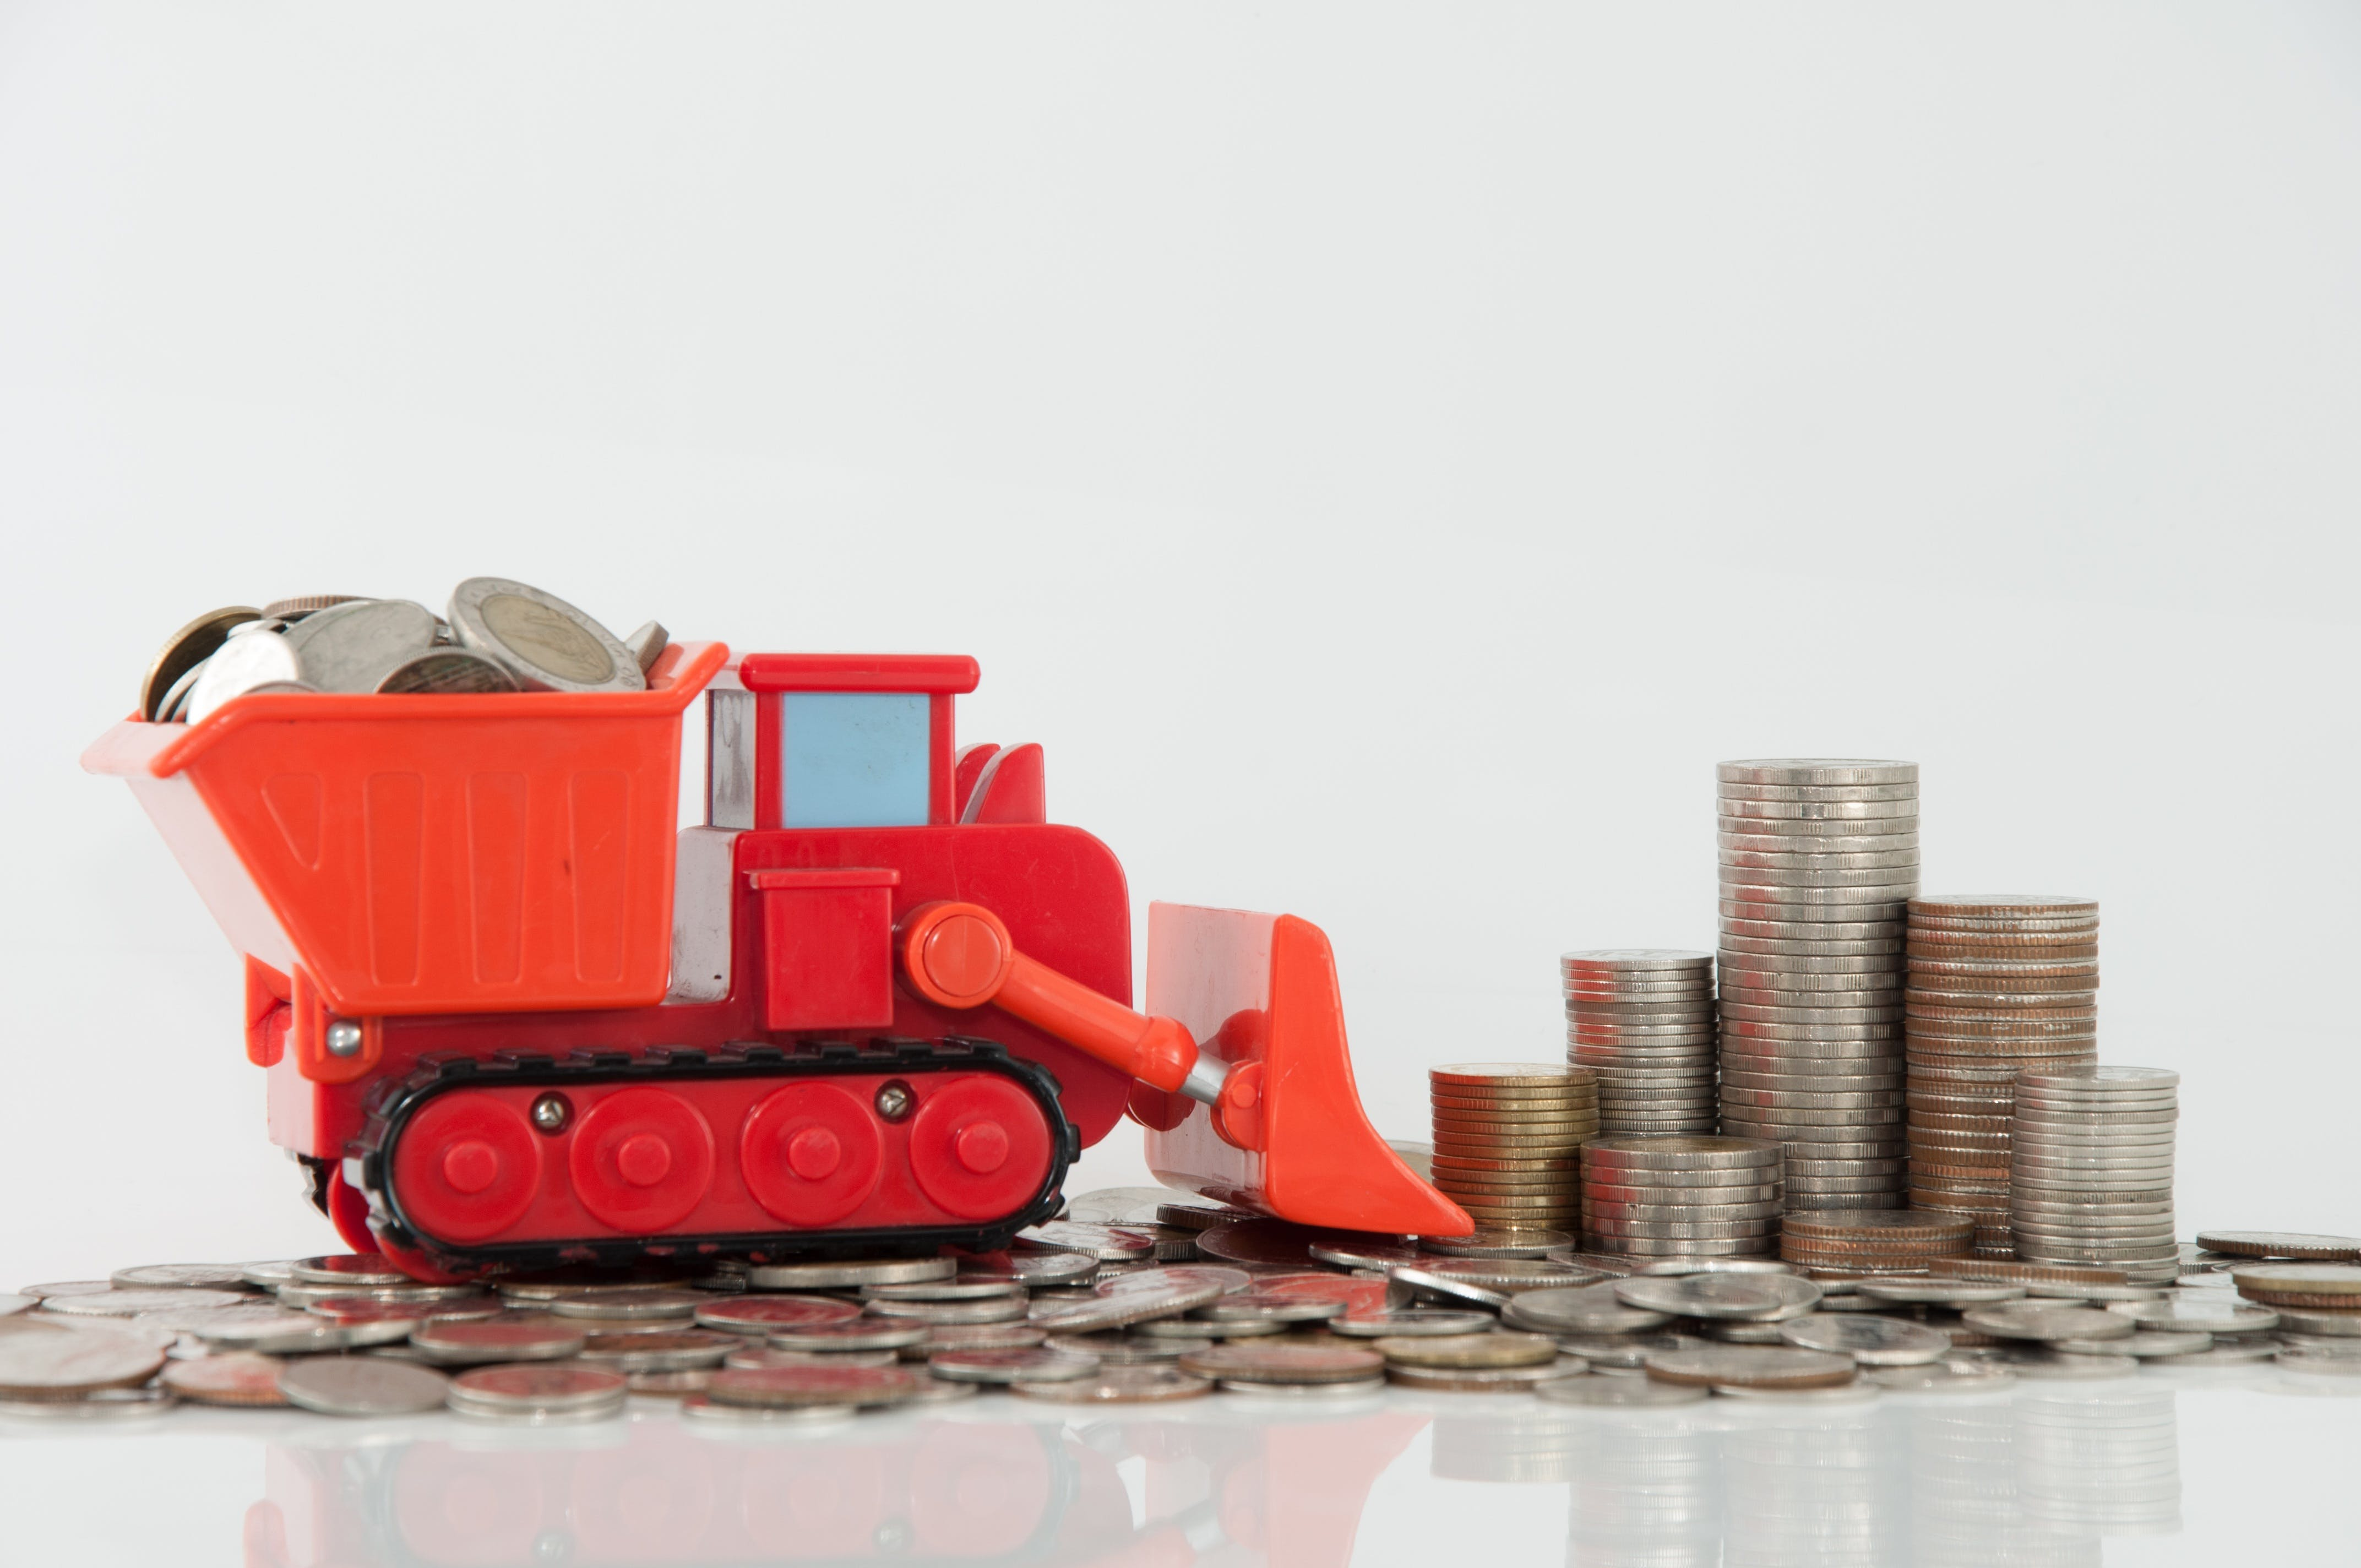 Free stock photo of money, truck, coin